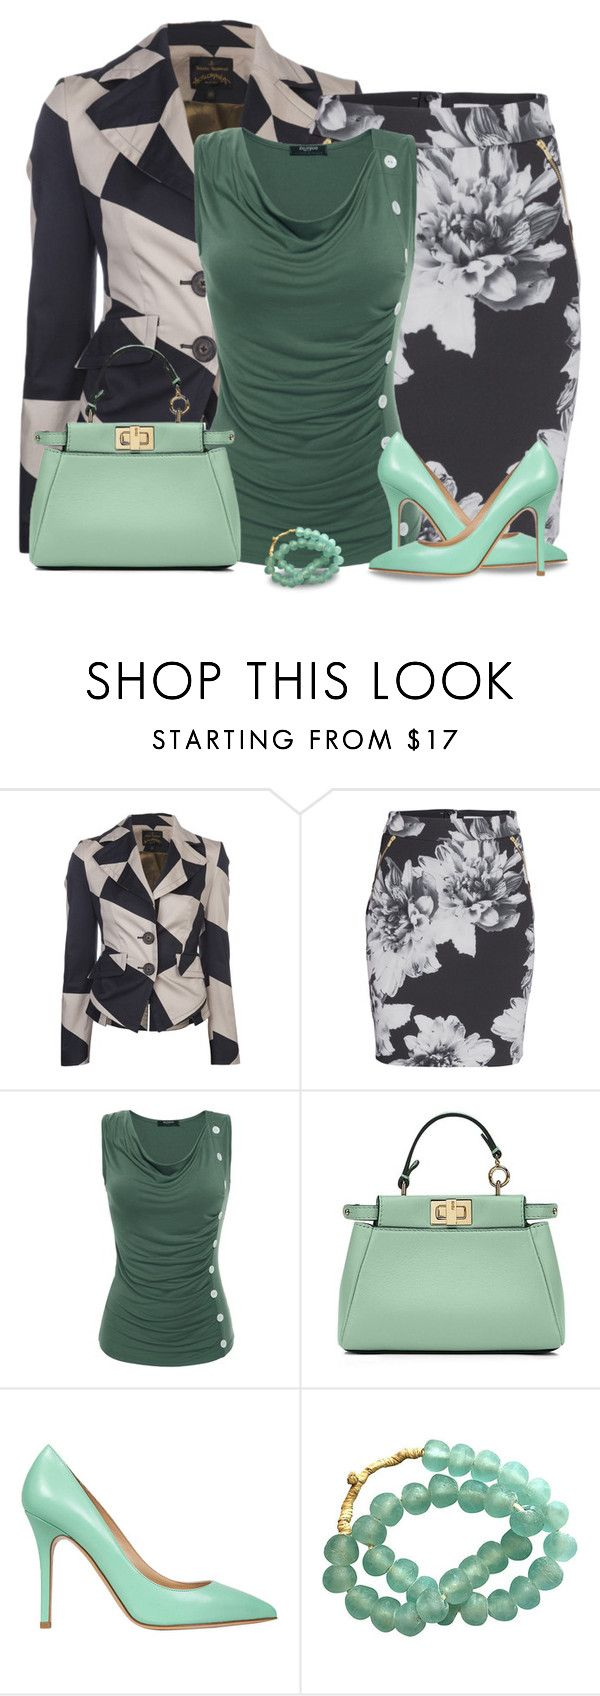 """Vivienne Westwood jacket"" by kamkami ❤ liked on Polyvore featuring Vivienne Westwood Anglomania, Fendi and Semilla"